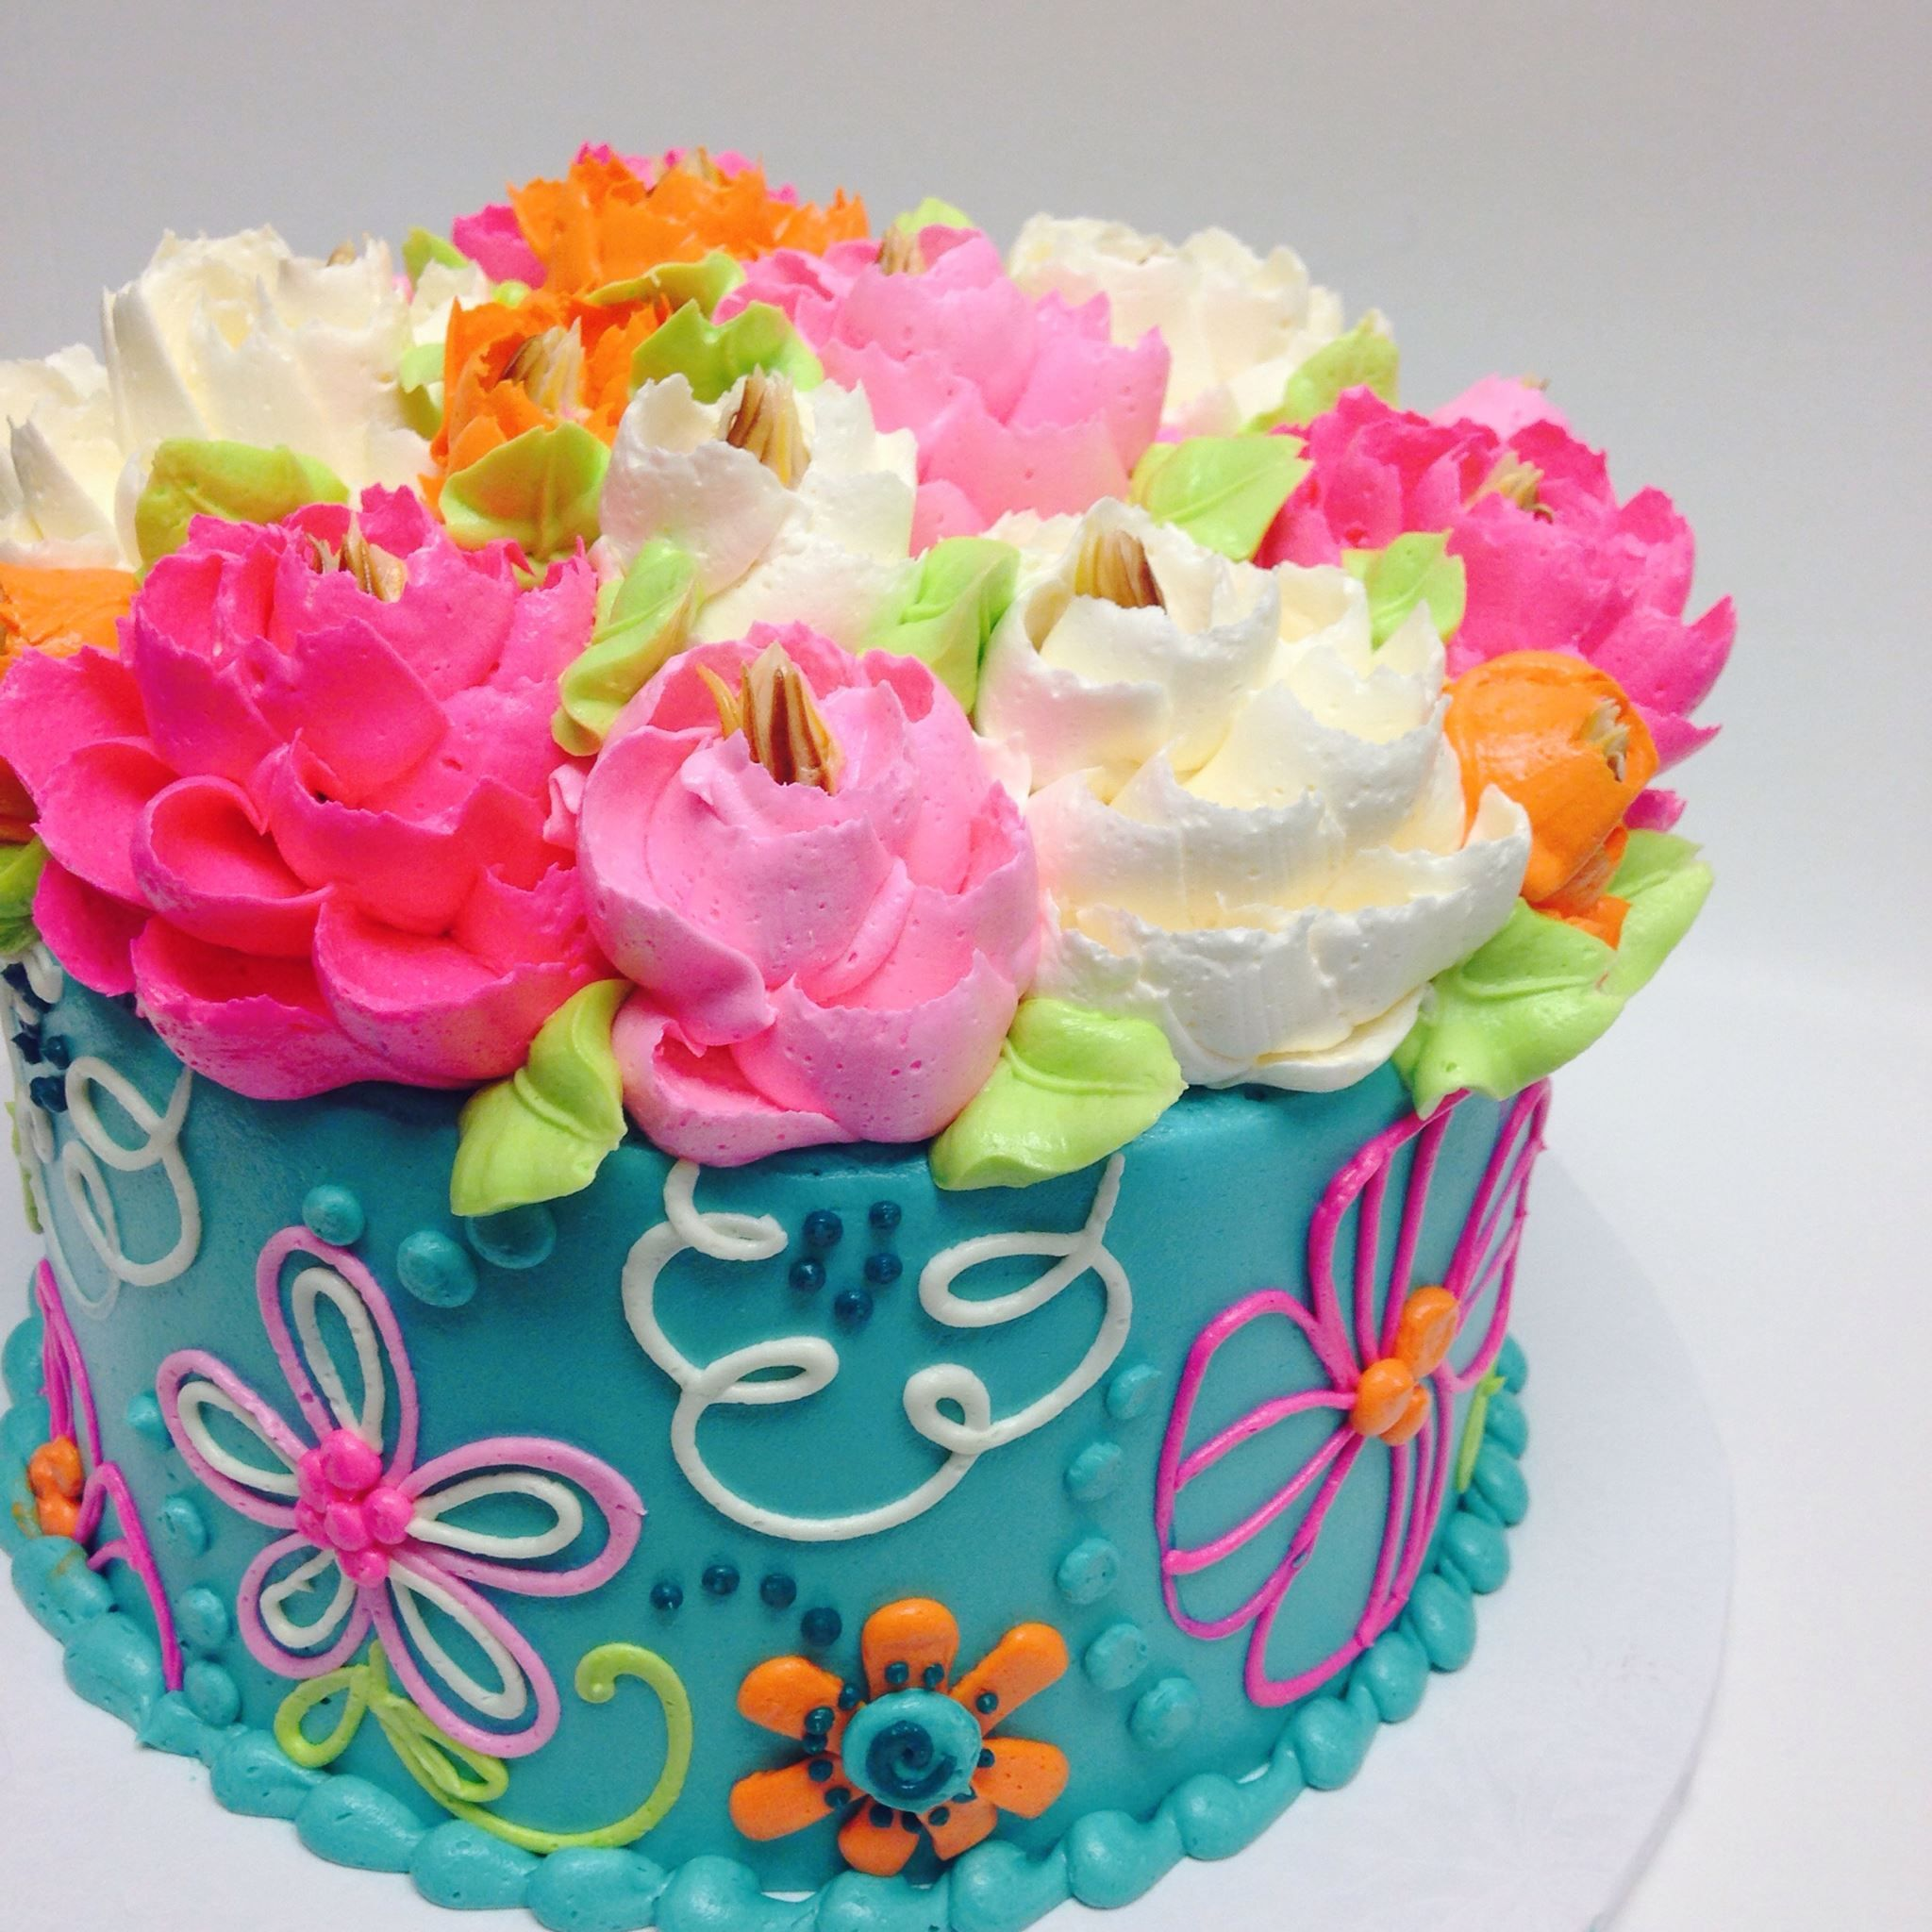 Buttercream Flower Cakes (With images) Cake, Cupcake